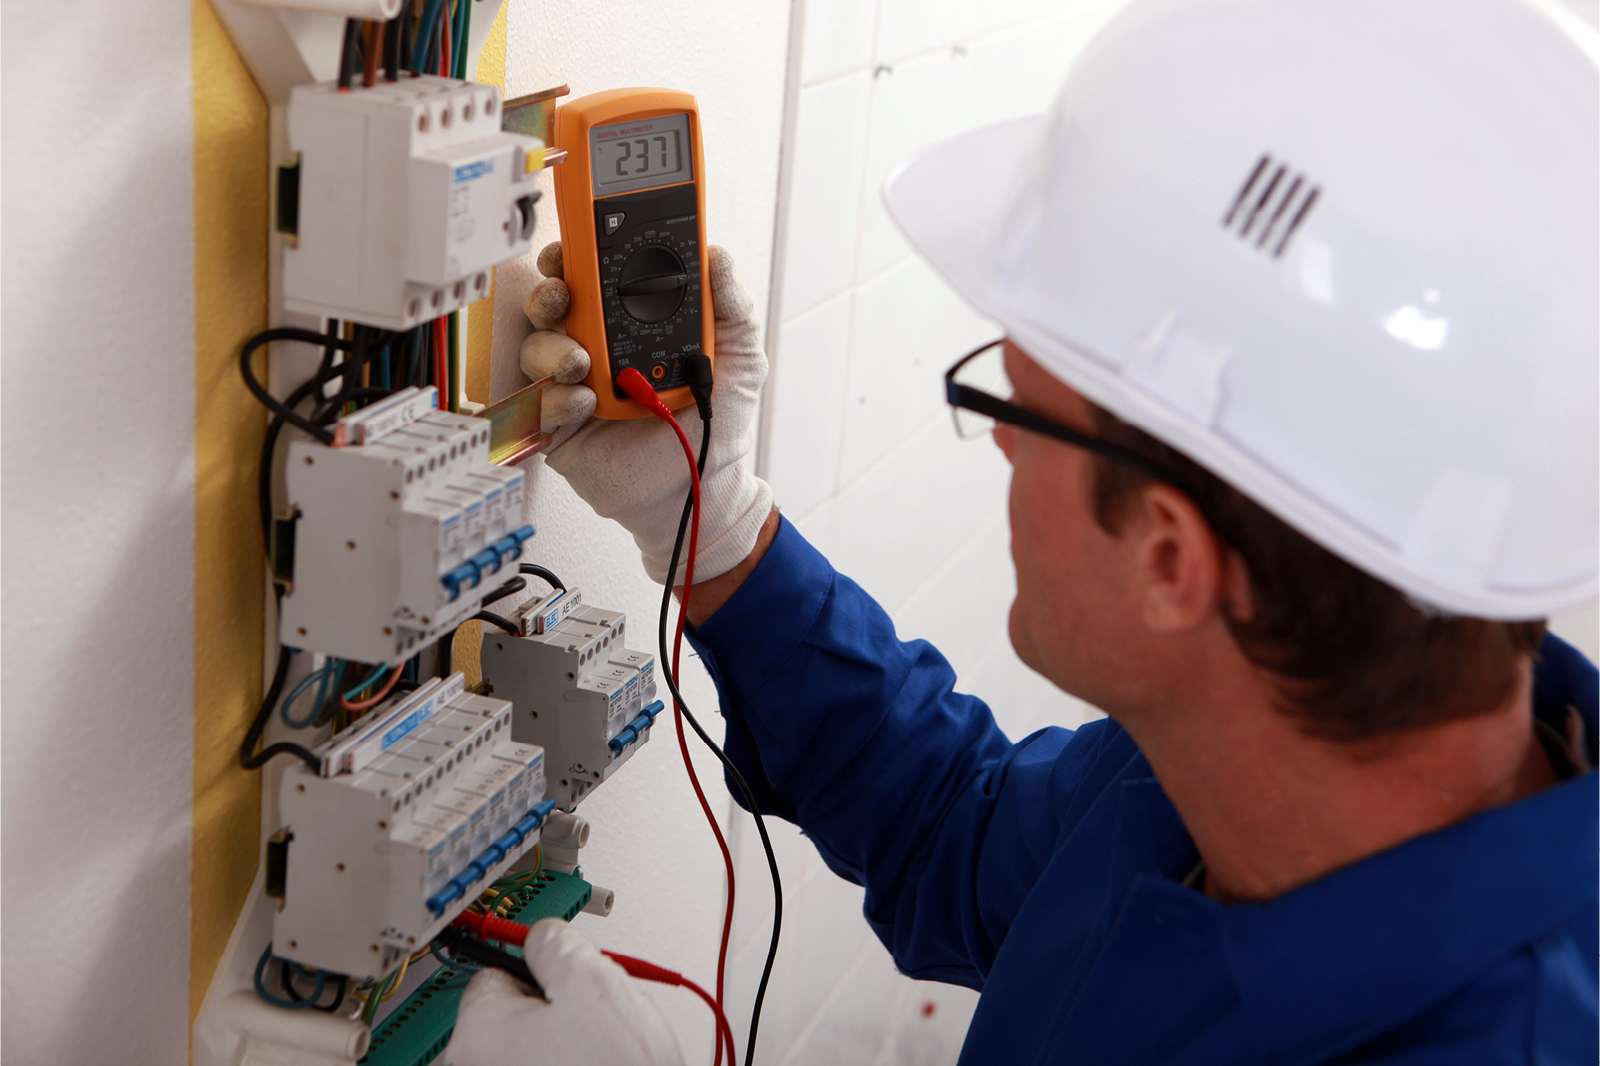 Aec Electrical Testing Inspection Services Southampton Domestic Fixed Wiring Tests Adalec